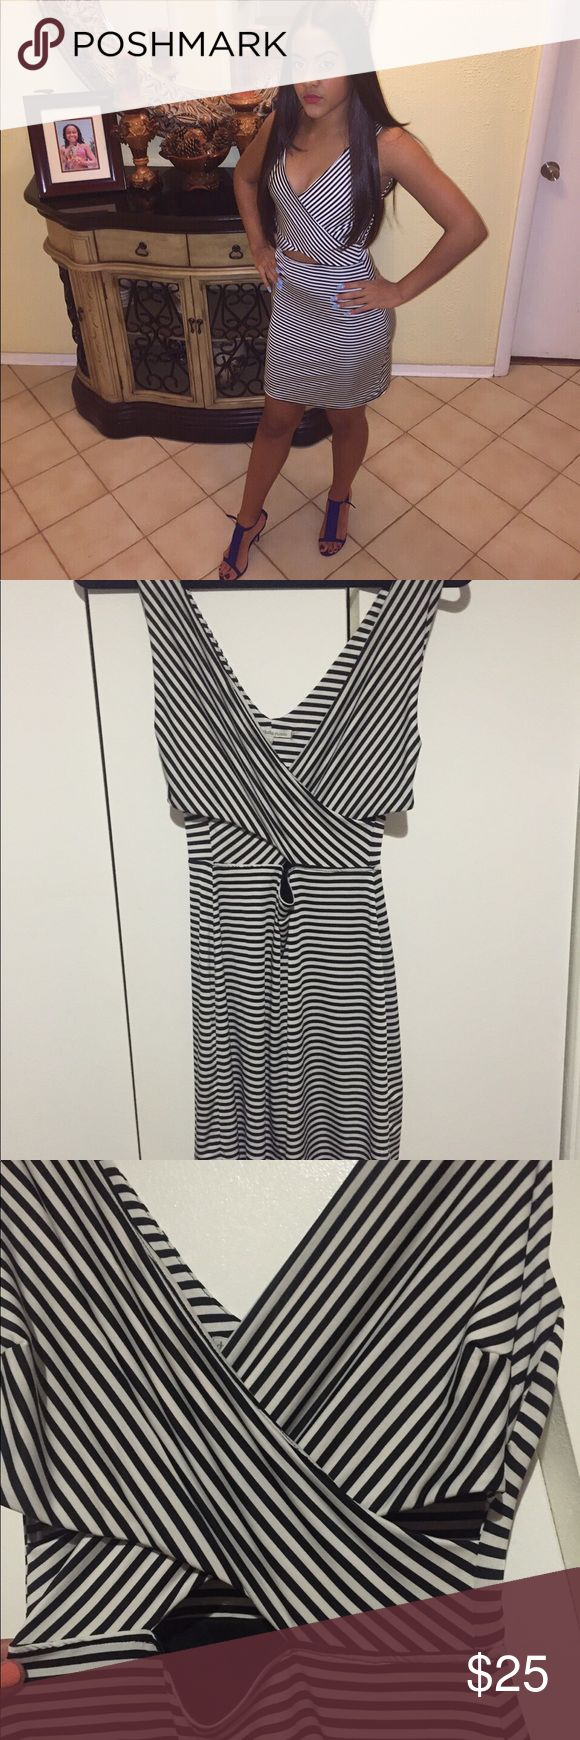 CHARLOTTE RUSSE STRIPED CUT OUT DRESS‼️WORN ONCE CUT OUT DRESS FROM THE SIDES AND THE UPPER BELLY ! CUTE ,CHIC AND SEXY ON A GIRLS NIGHT OUT ! Charlotte Russe Dresses Midi